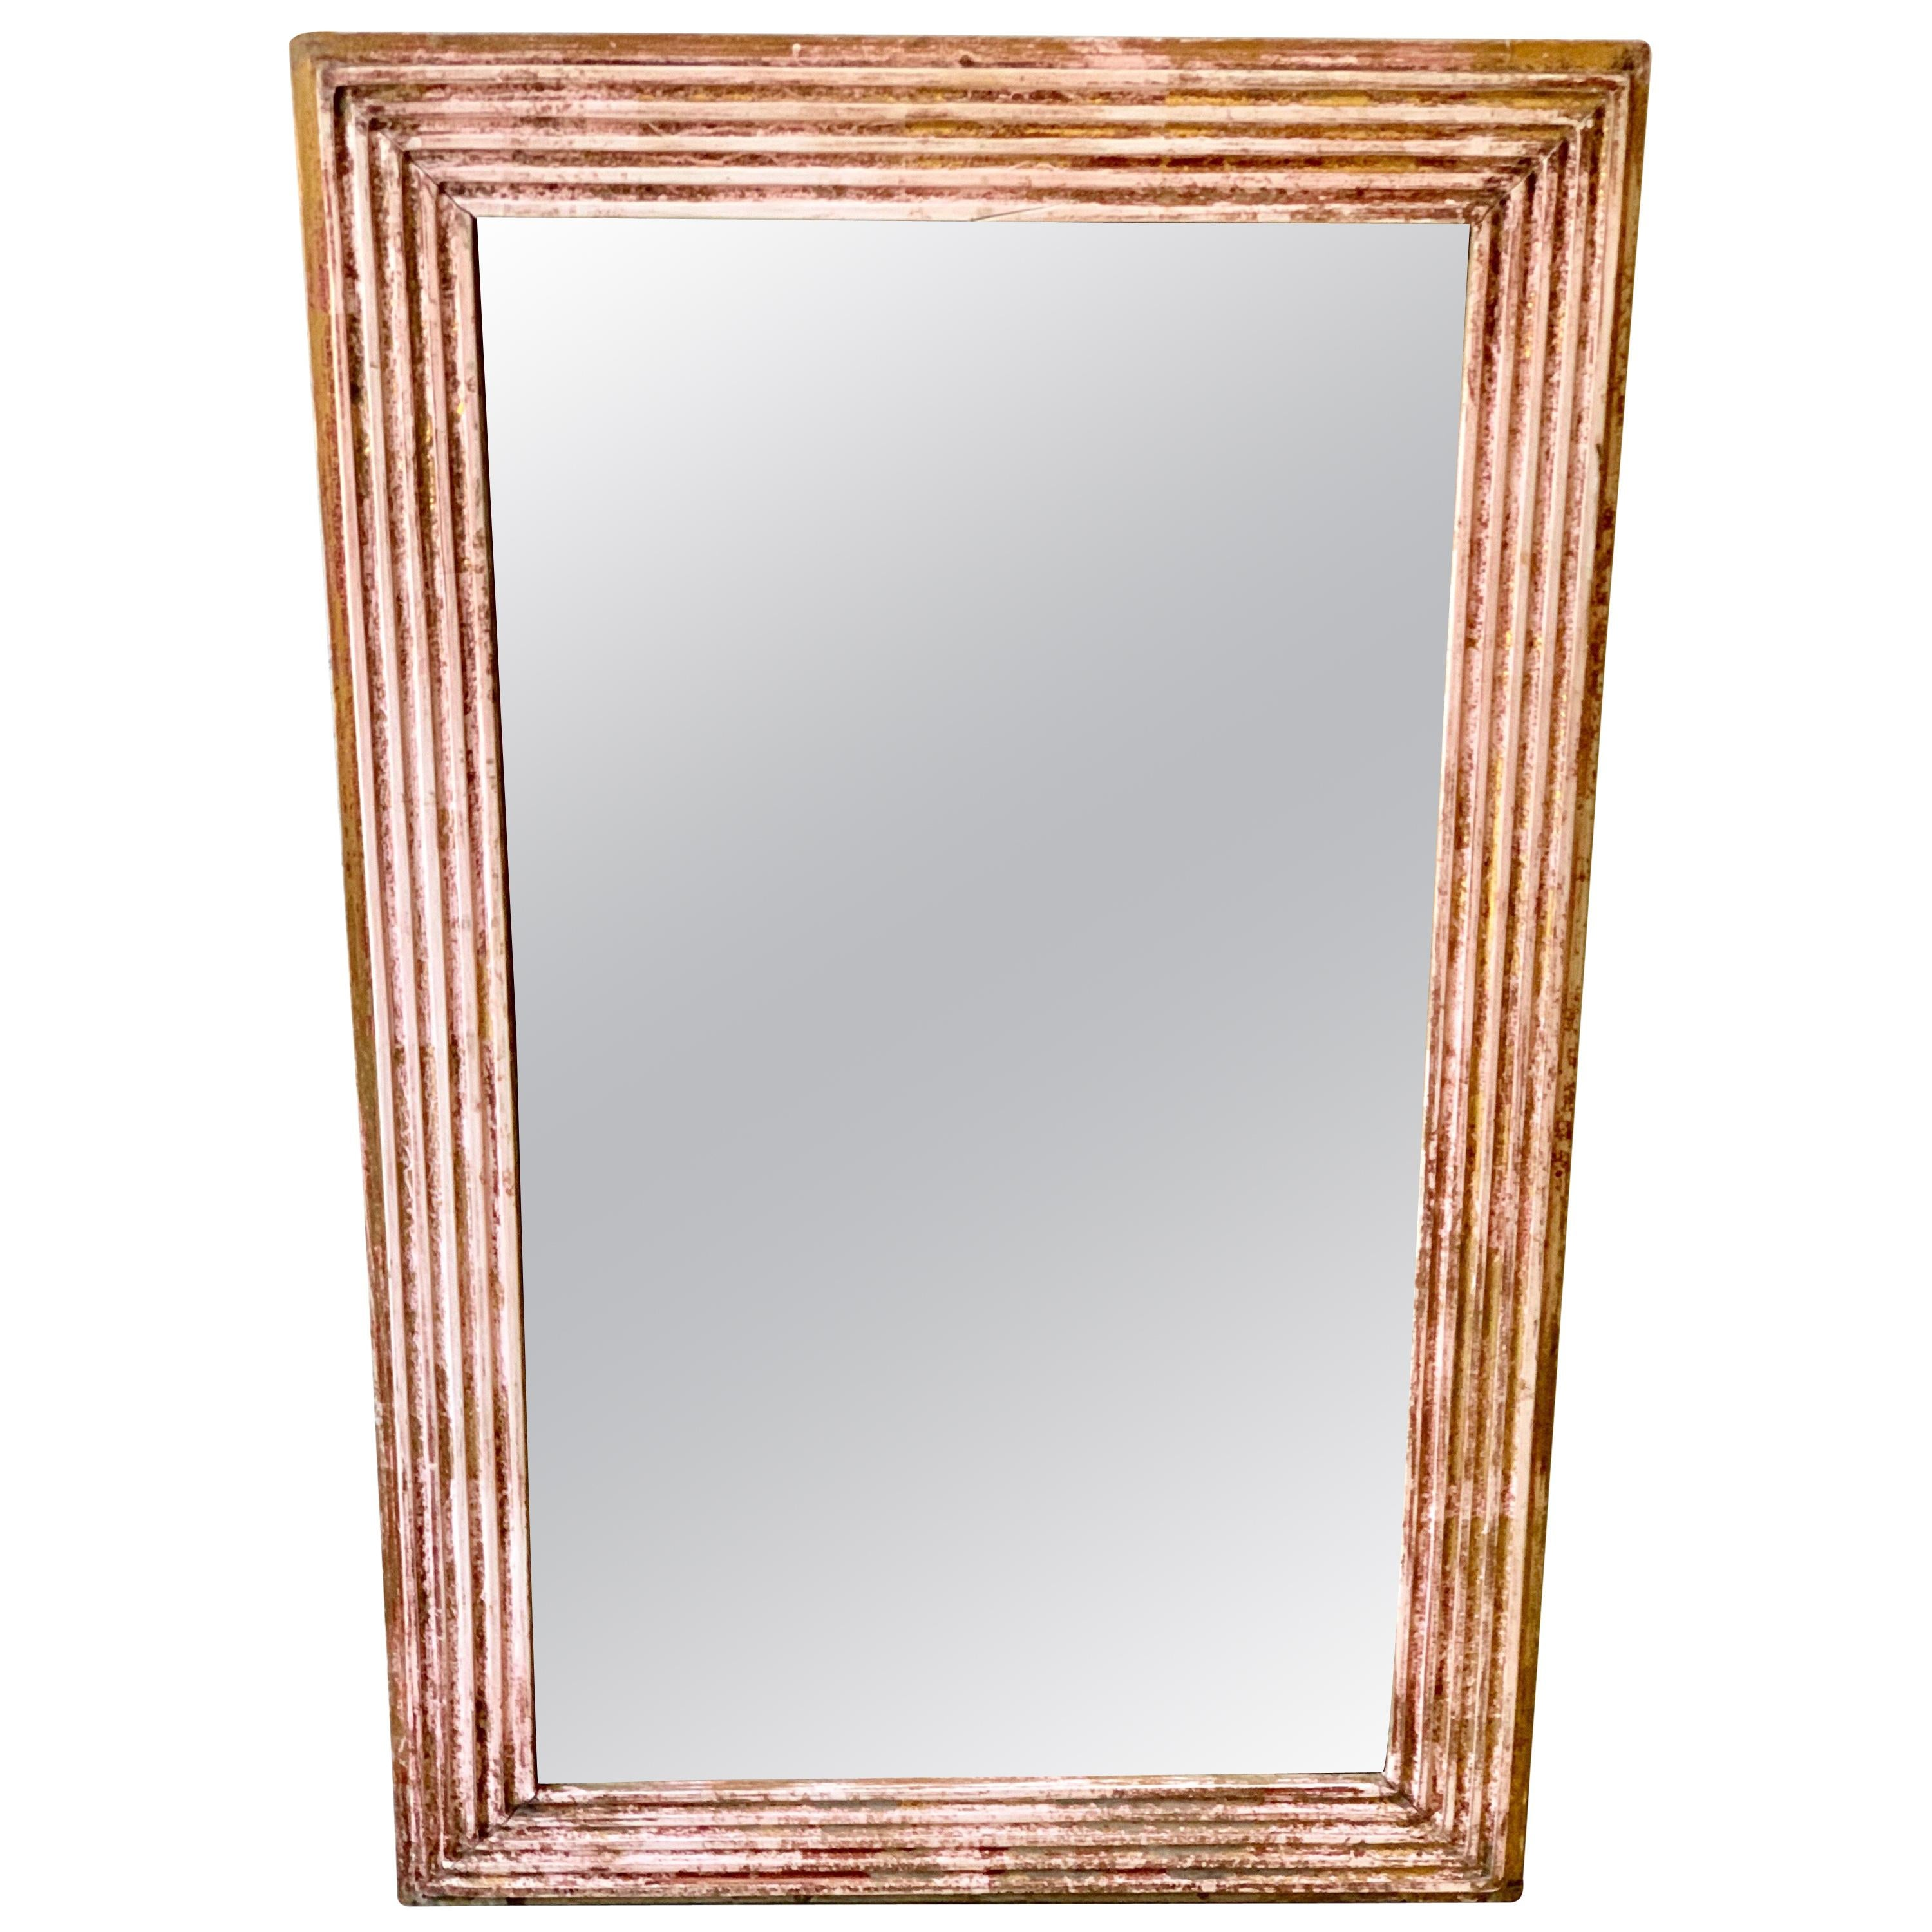 Directoire Mercury Glass Mirror with Original Gilding, French, 19th century